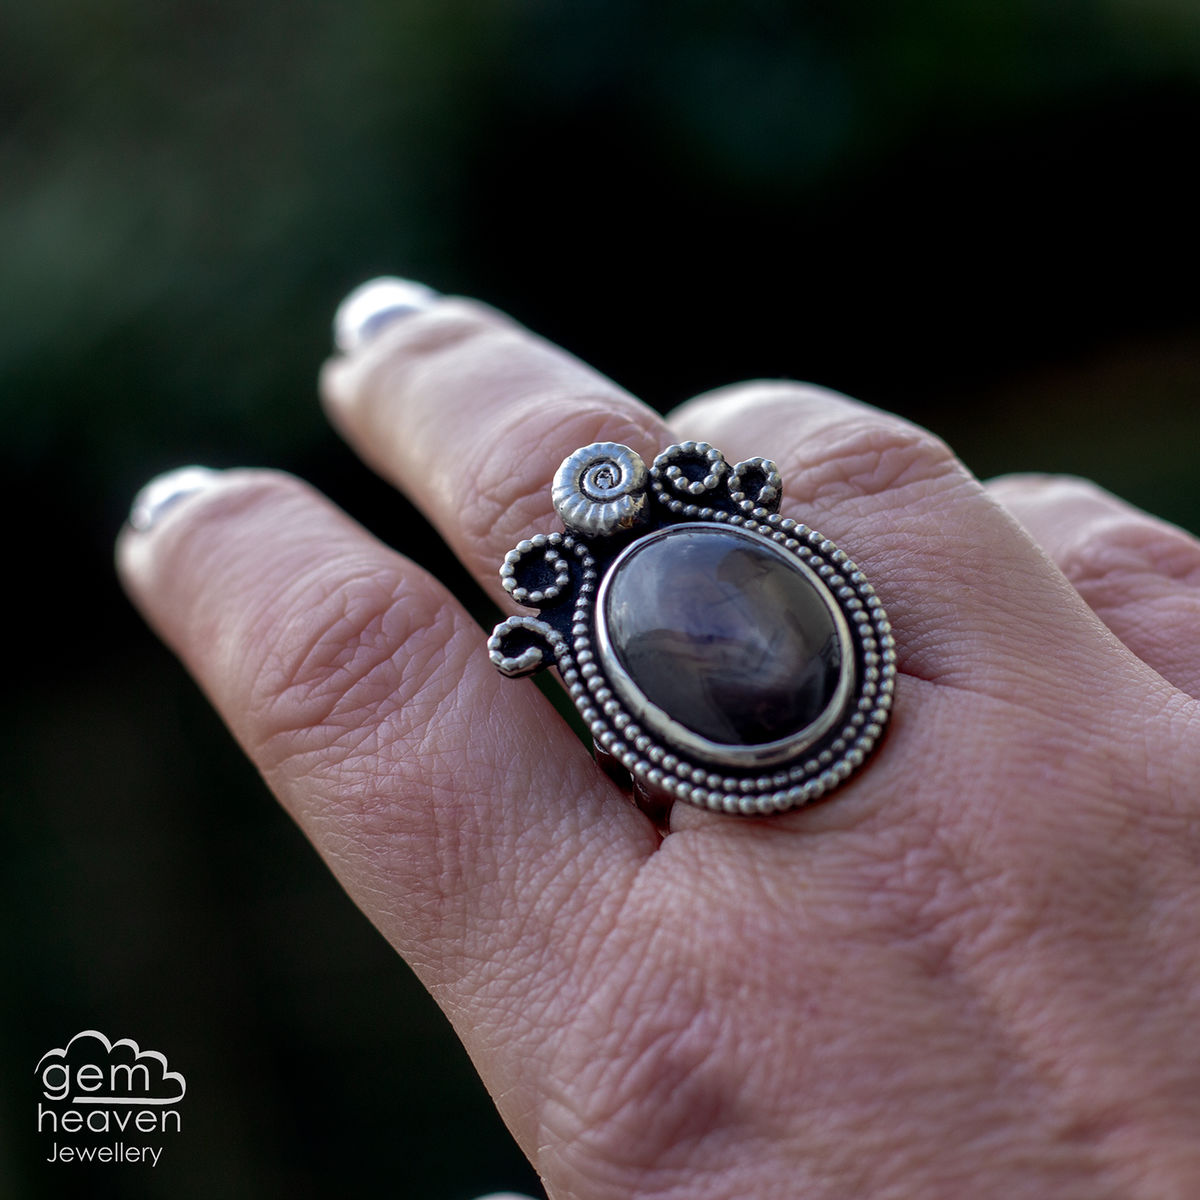 Aethiopia Statement ring  - product images  of